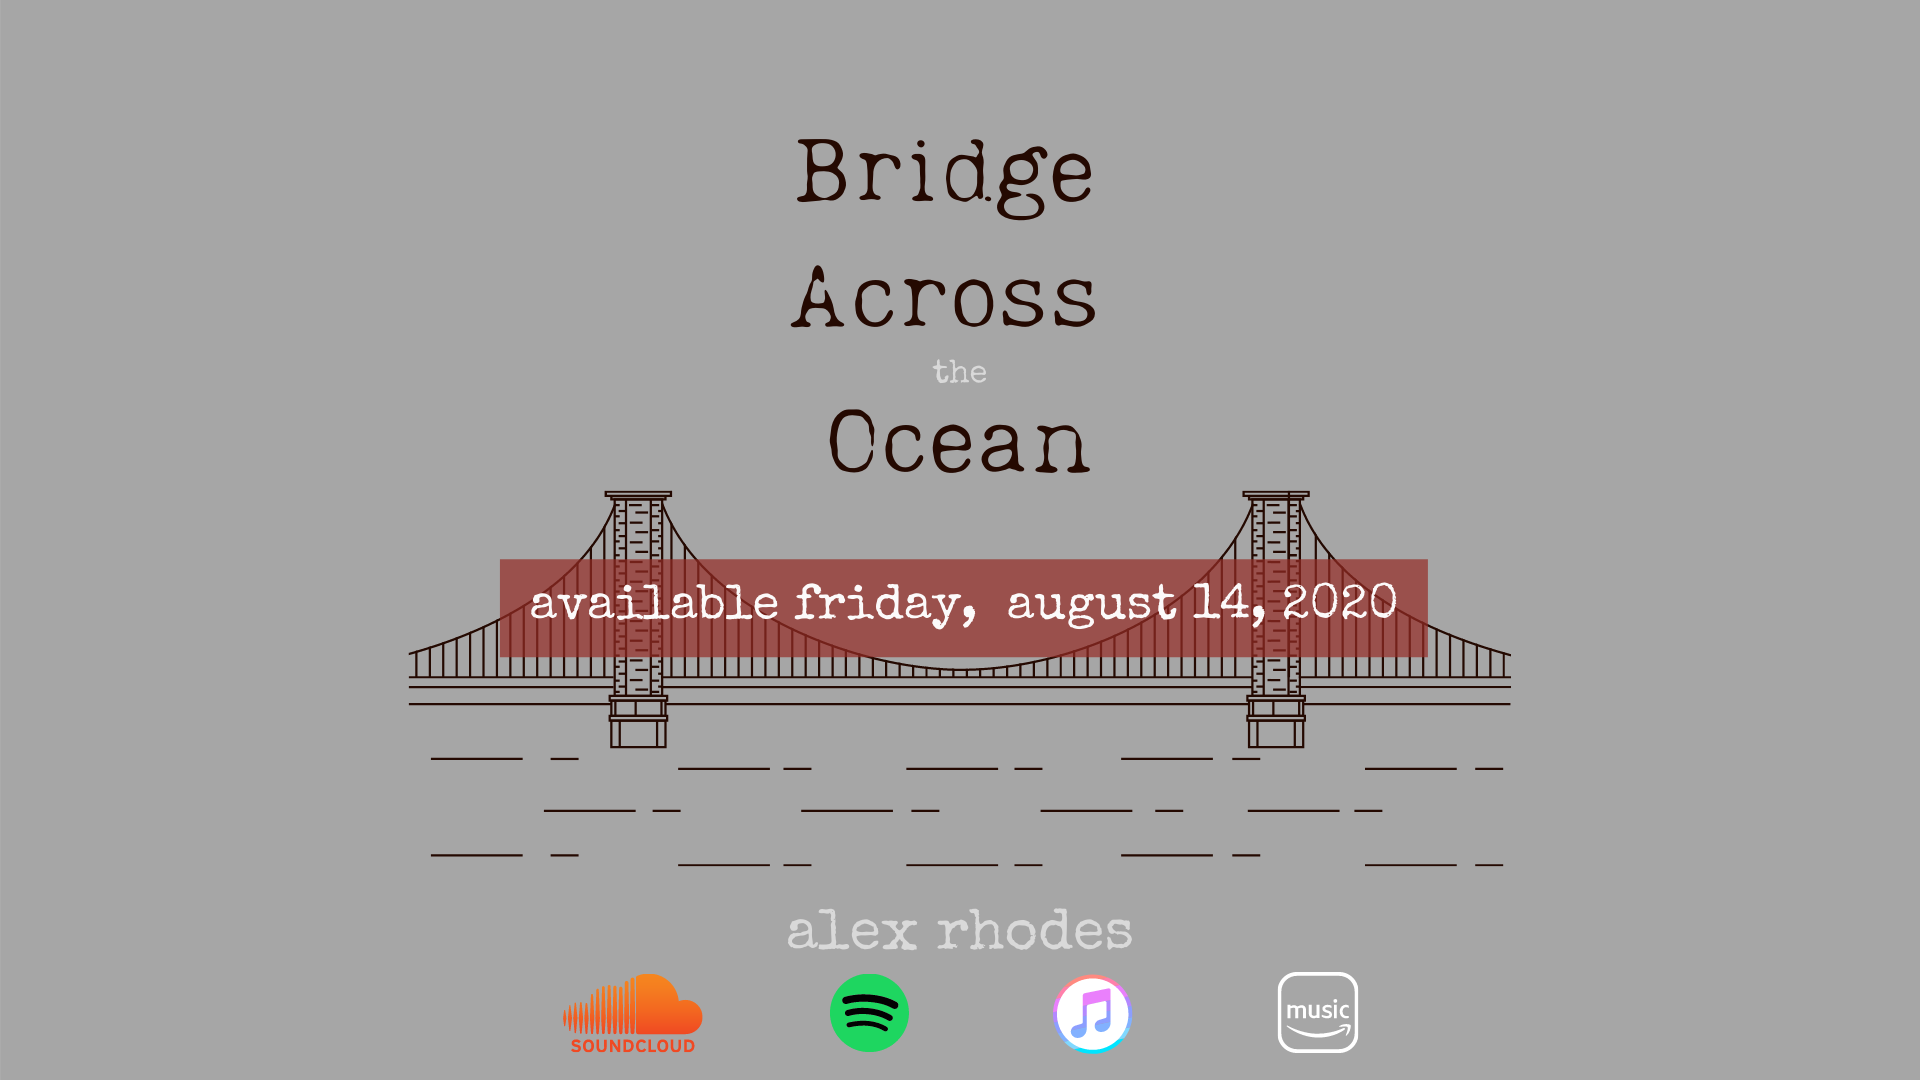 Bridge Across the Ocean Release!!!